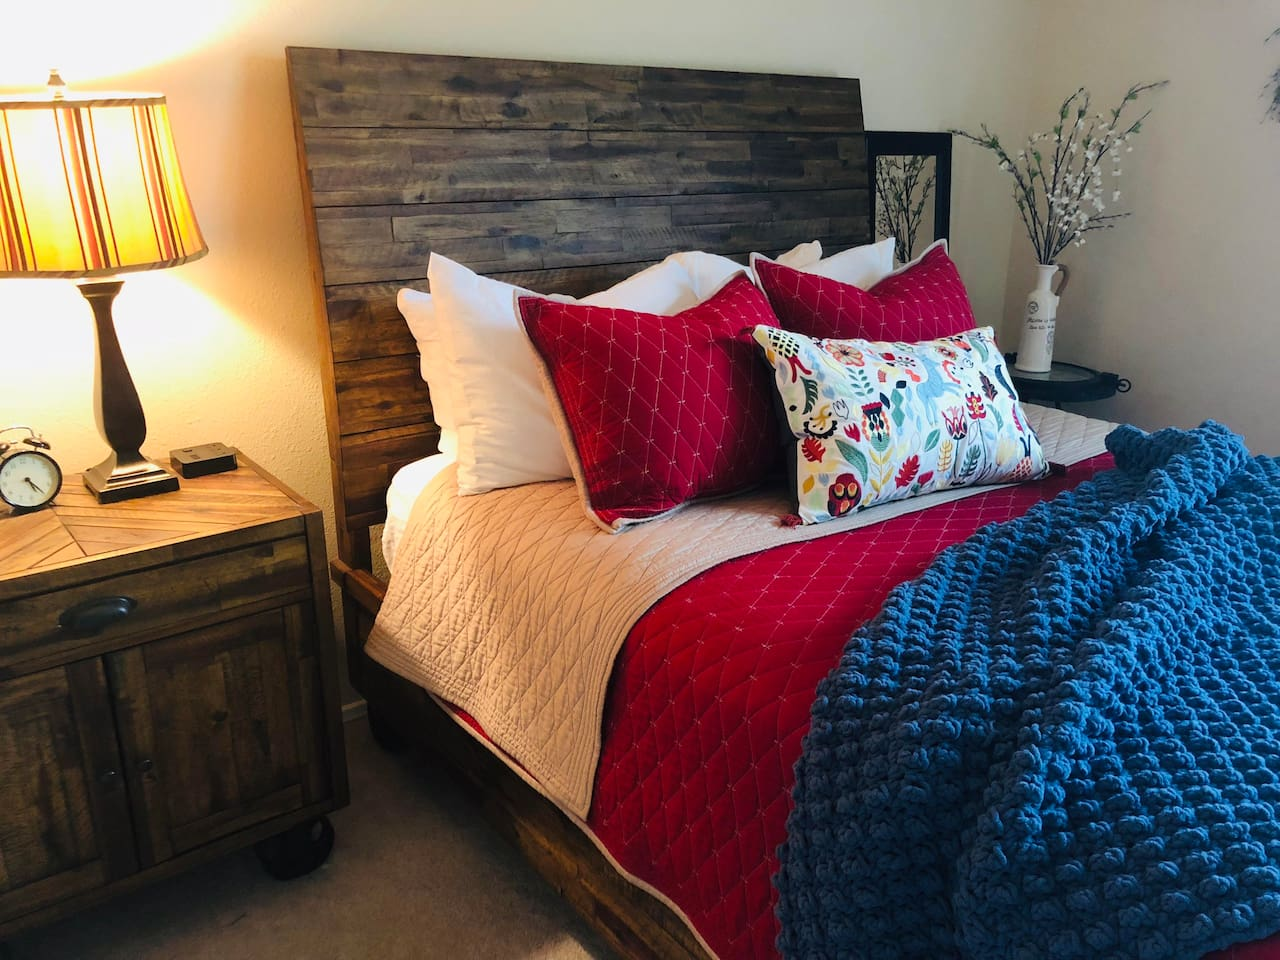 You'll love this comfy bed!